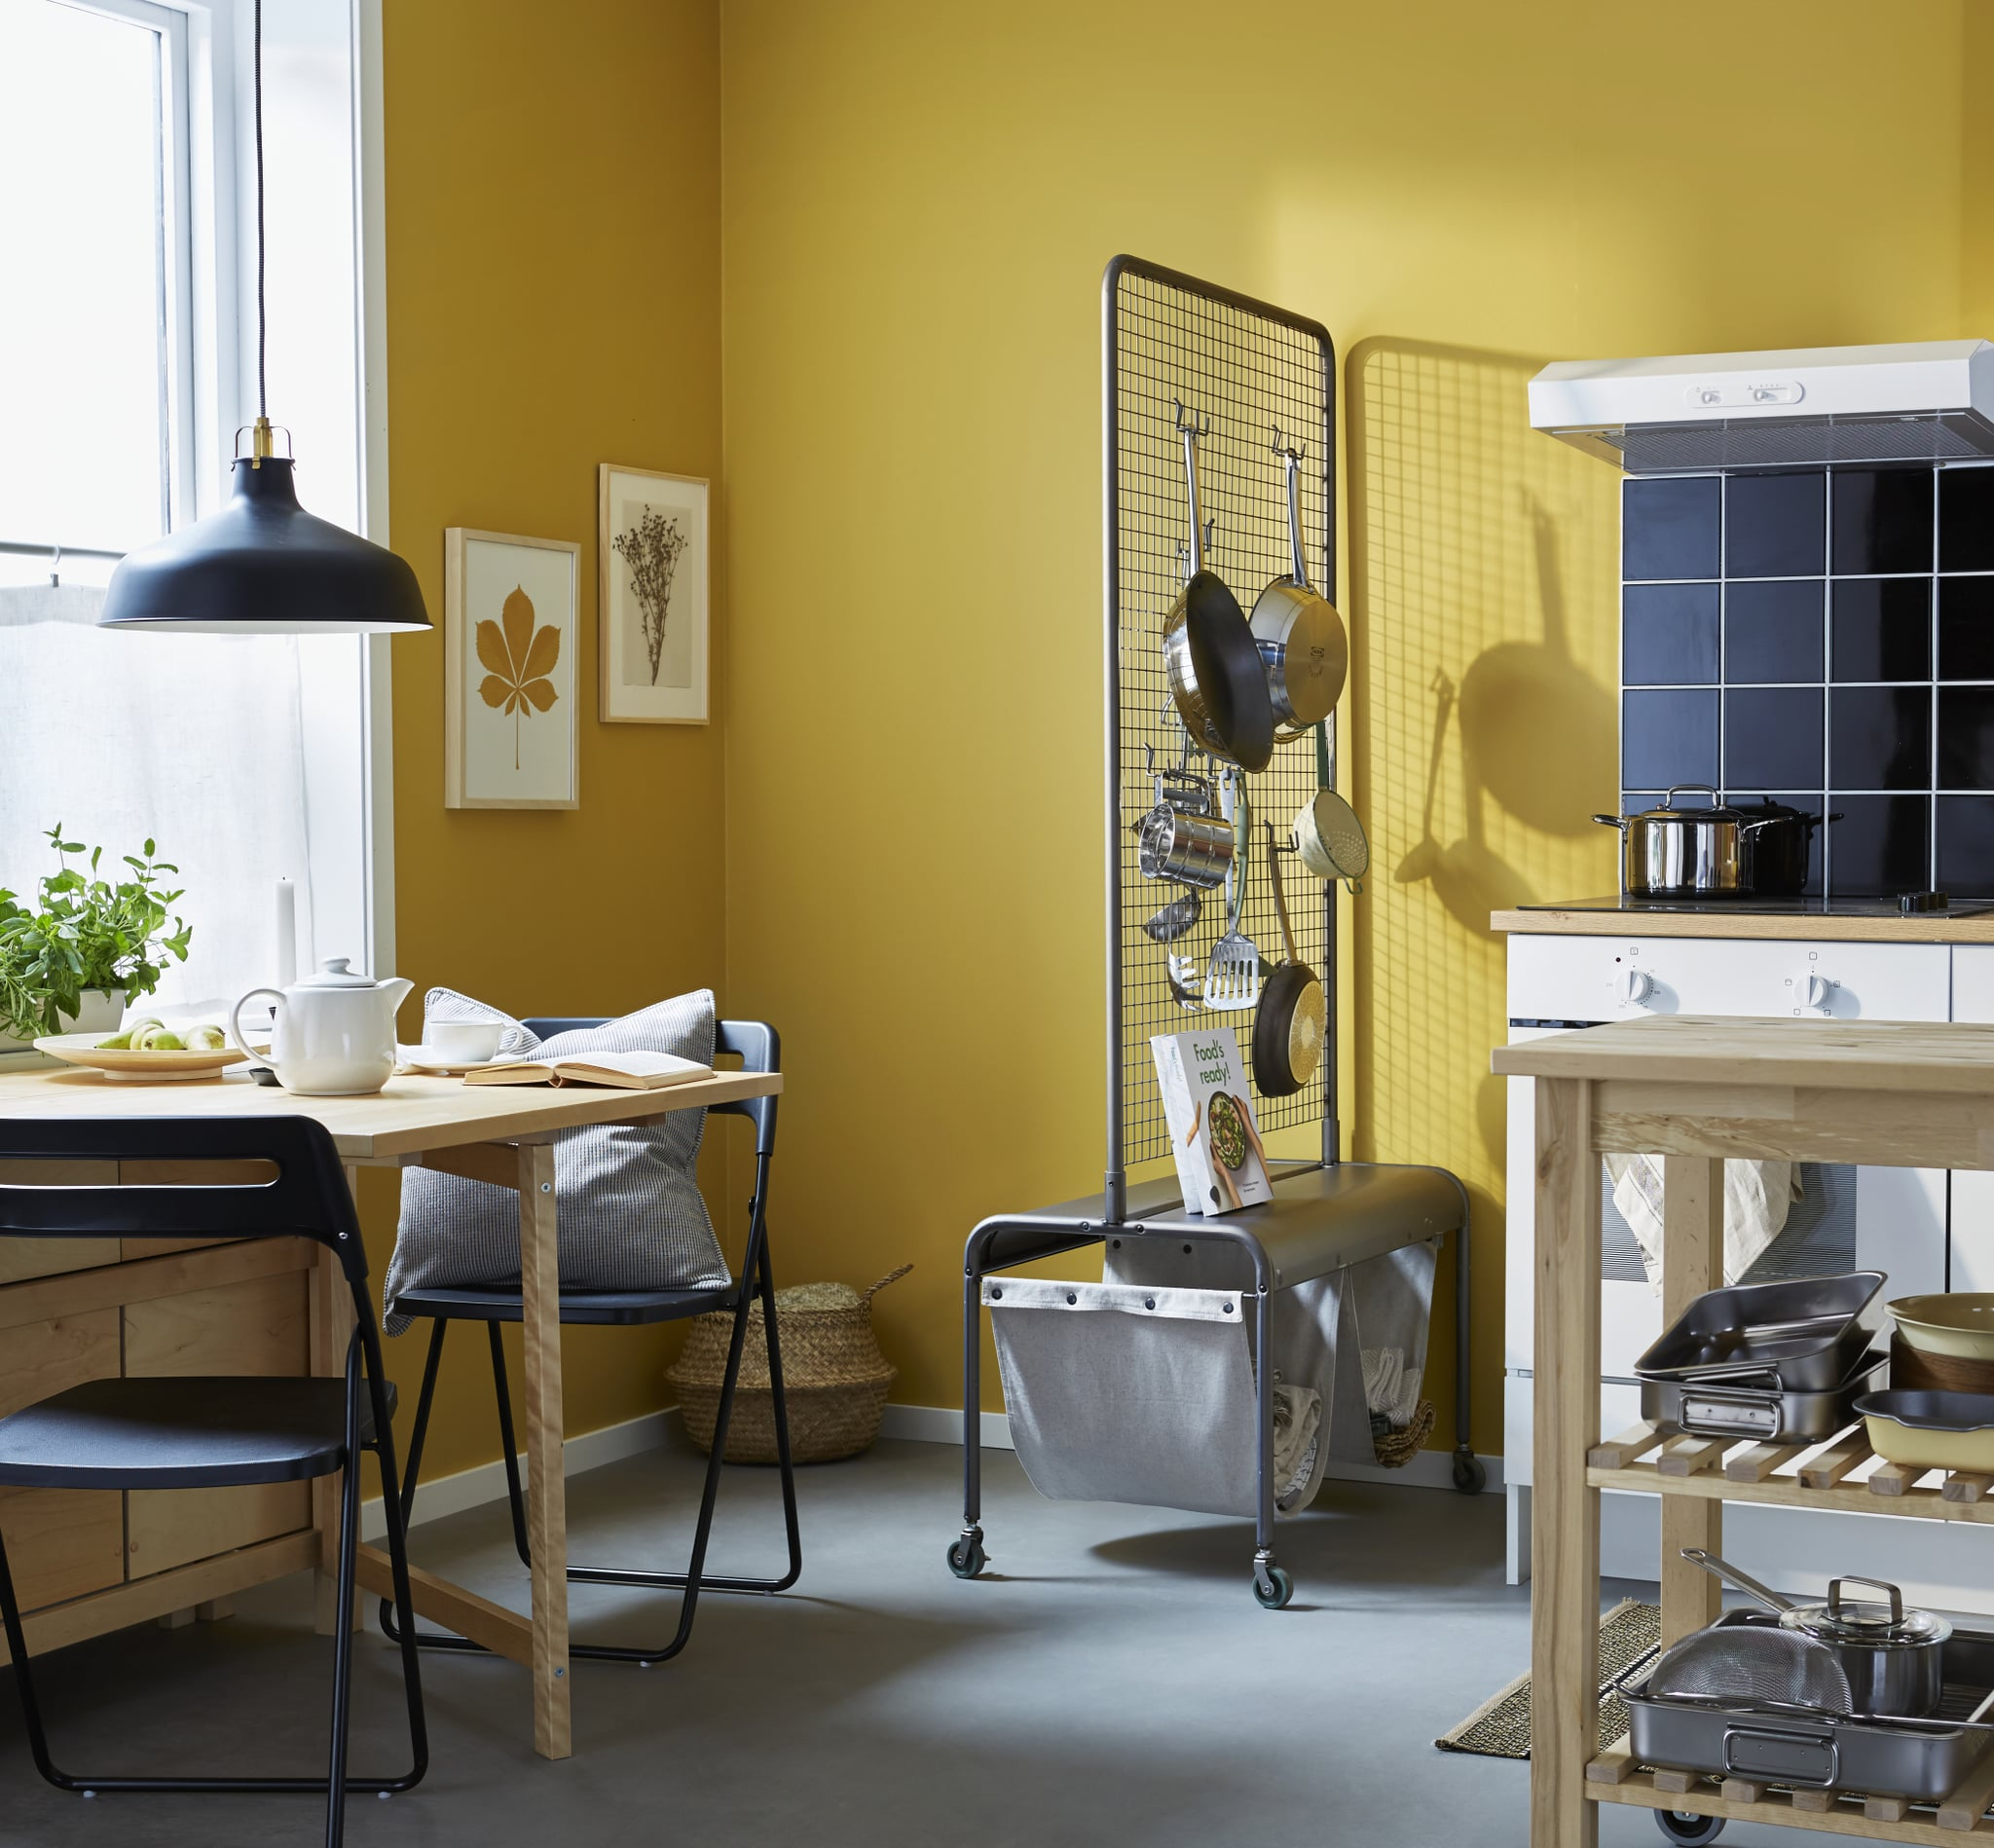 Stylish The 15 Best Online Furniture Stores: Ikea Online Shopping Available In Sydney